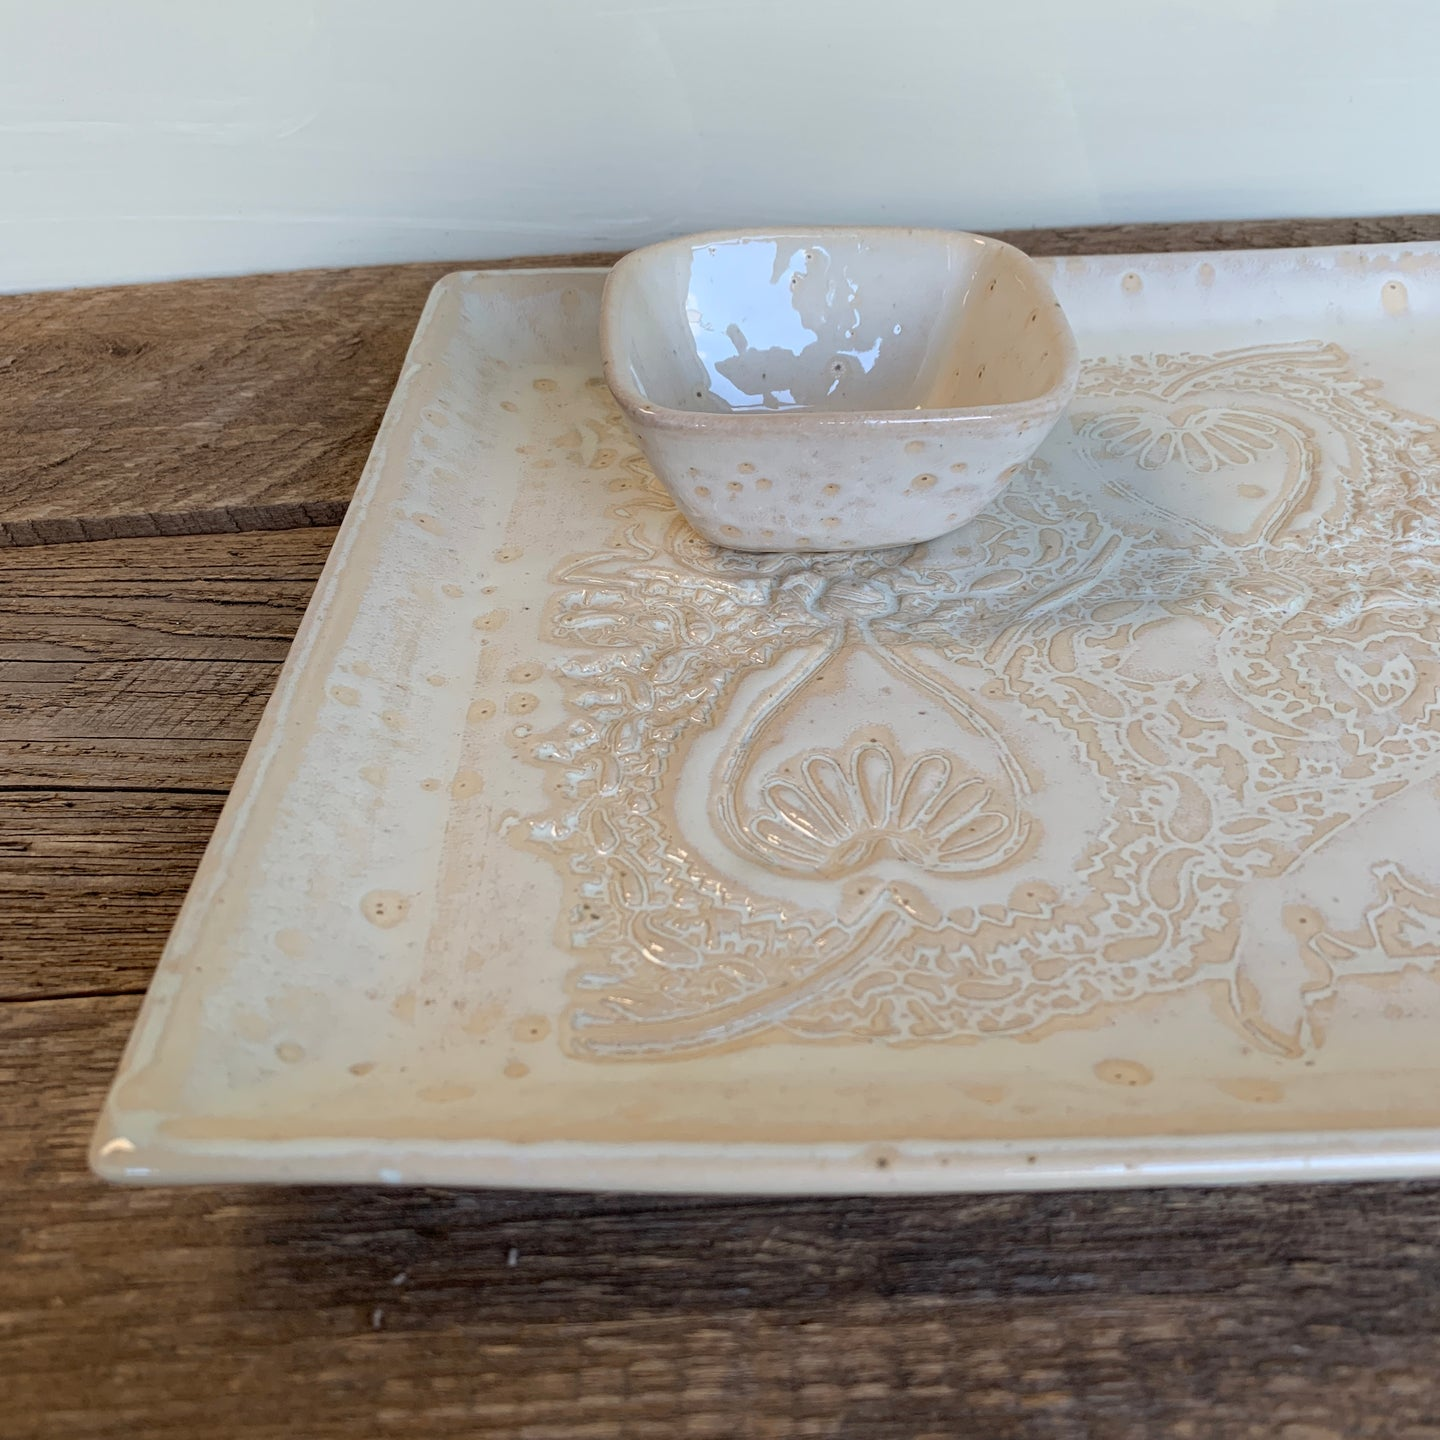 OATMEAL SMALL SQUARE PLATTER SET IN MEHNDI (11